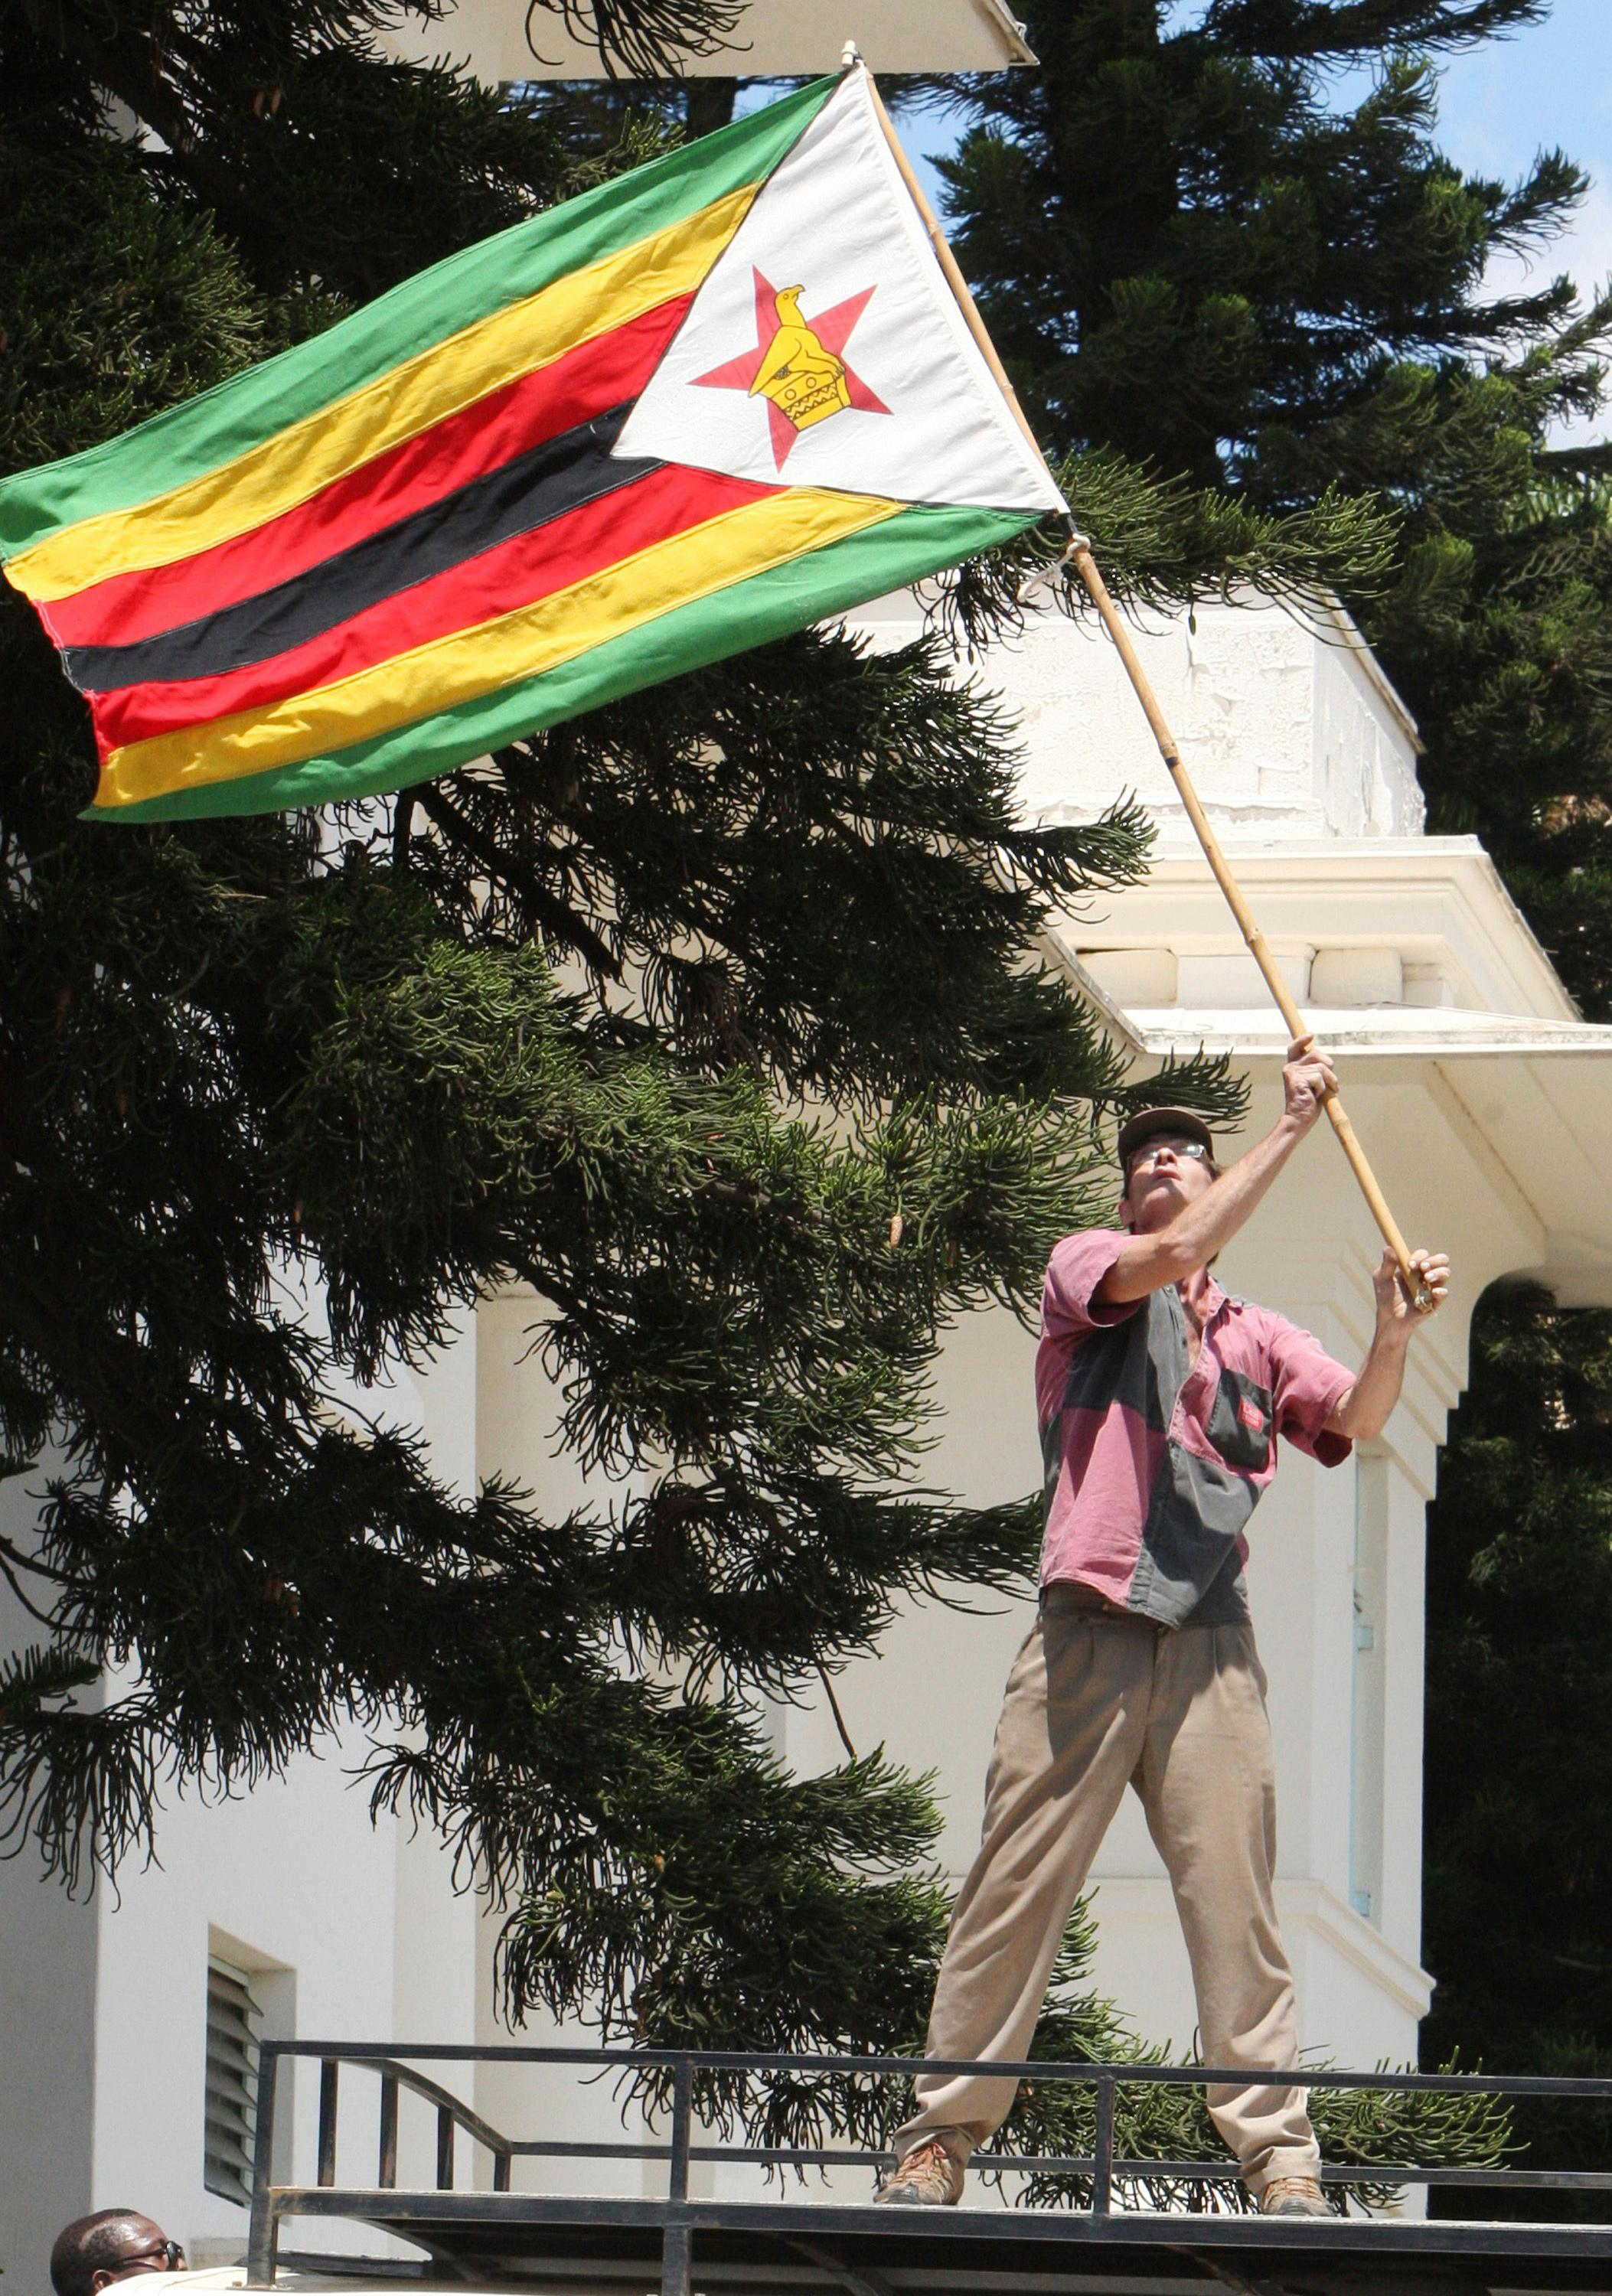 A man holds a Zimbabwe flag up as hundreds gather in Bulawayo, Zimbabwe, Saturday, Nov. 18, 2017 to demand the departure of President Robert Mugabe after nearly four decades in power. (AP Photo/Lucky Tshuma)